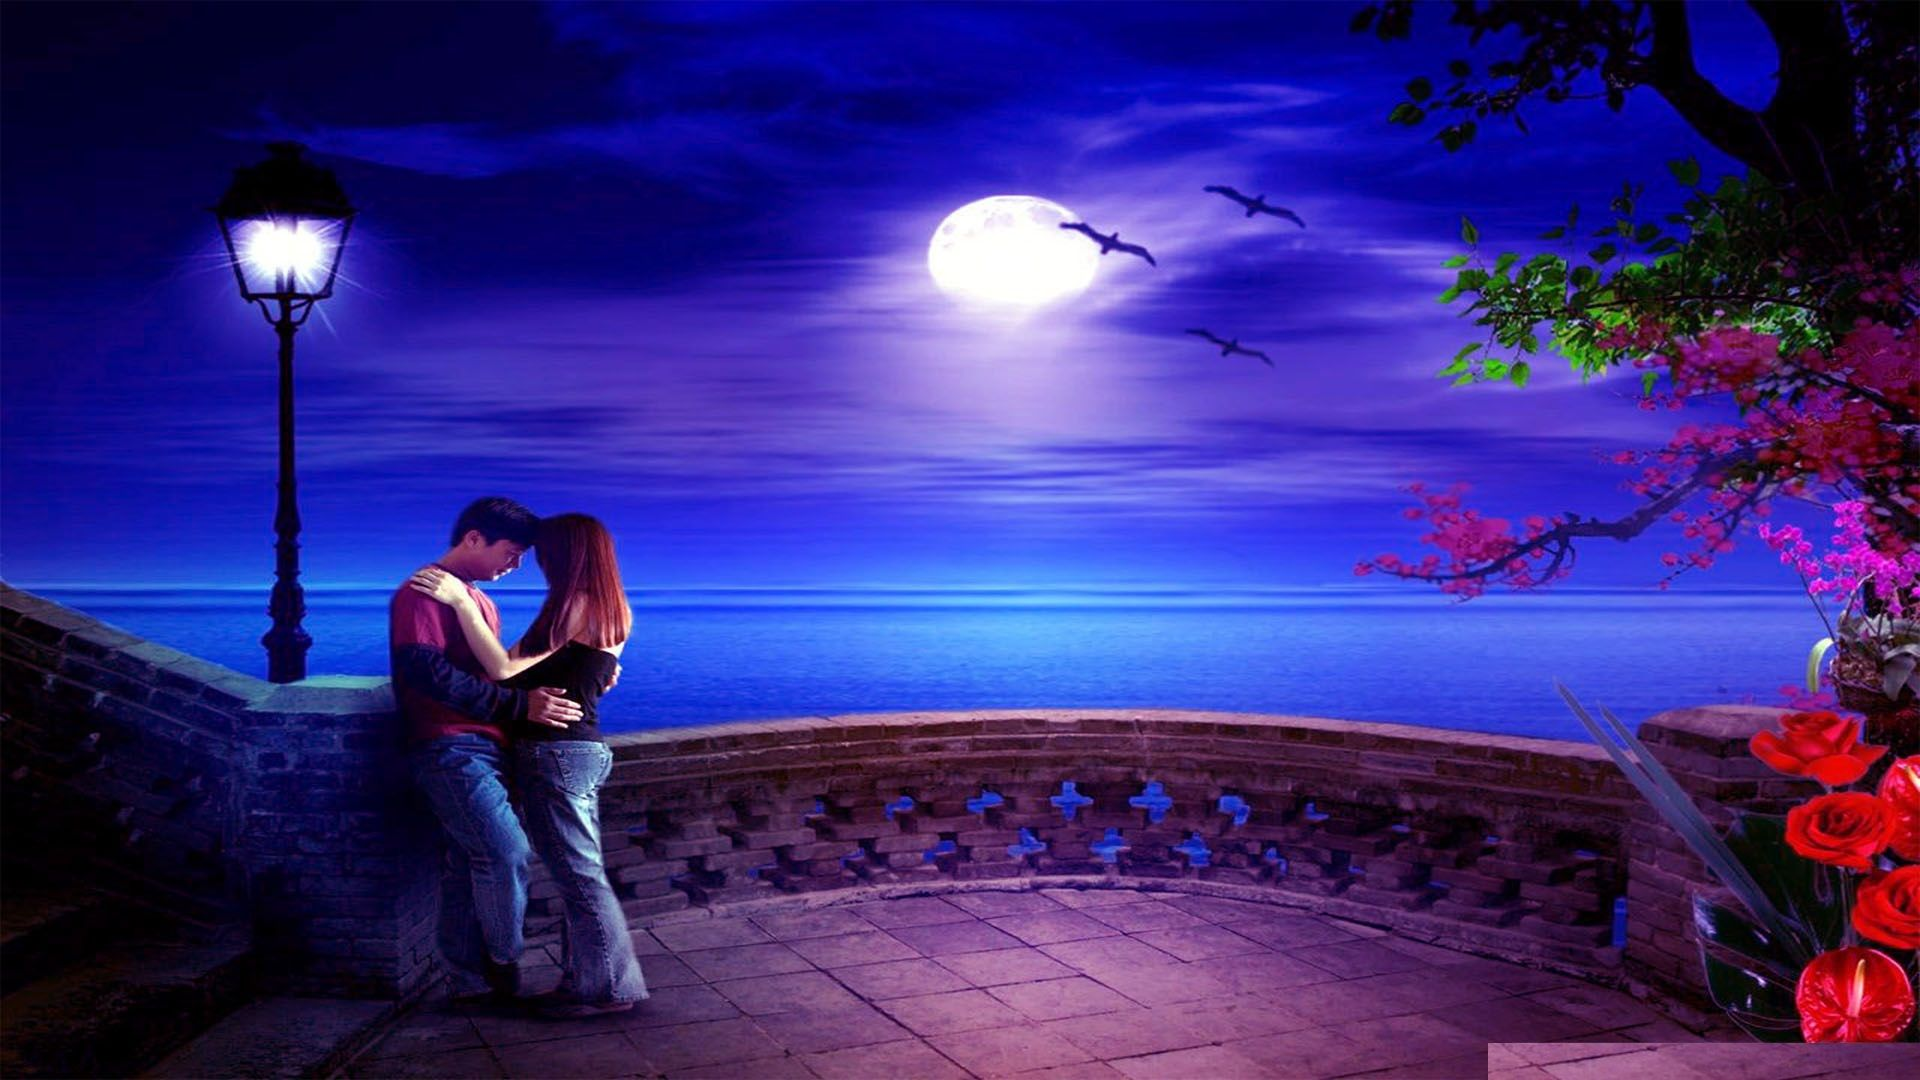 Romantic Love Wallpaper For Gf : Romantic Love HD Wallpapers : Find best latest Romantic Love HD Wallpapers for your Pc desktop ...